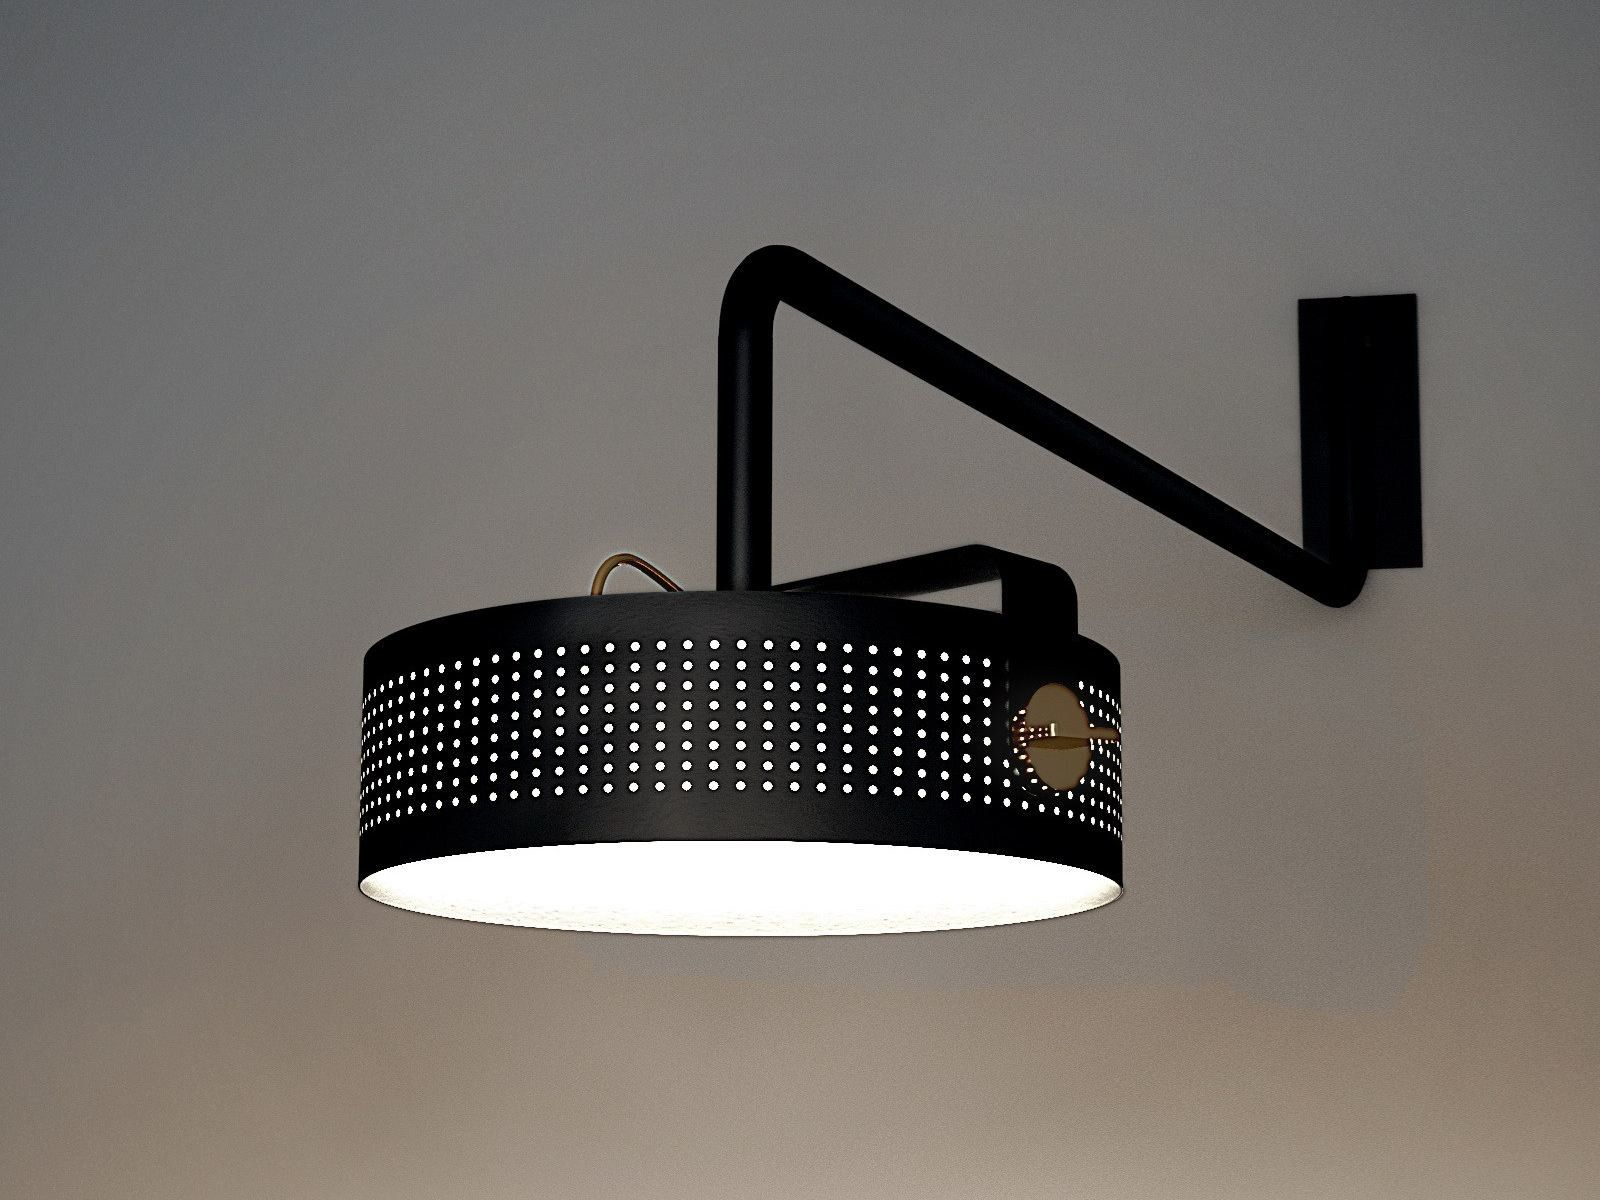 Modena applique in light led wall lamp